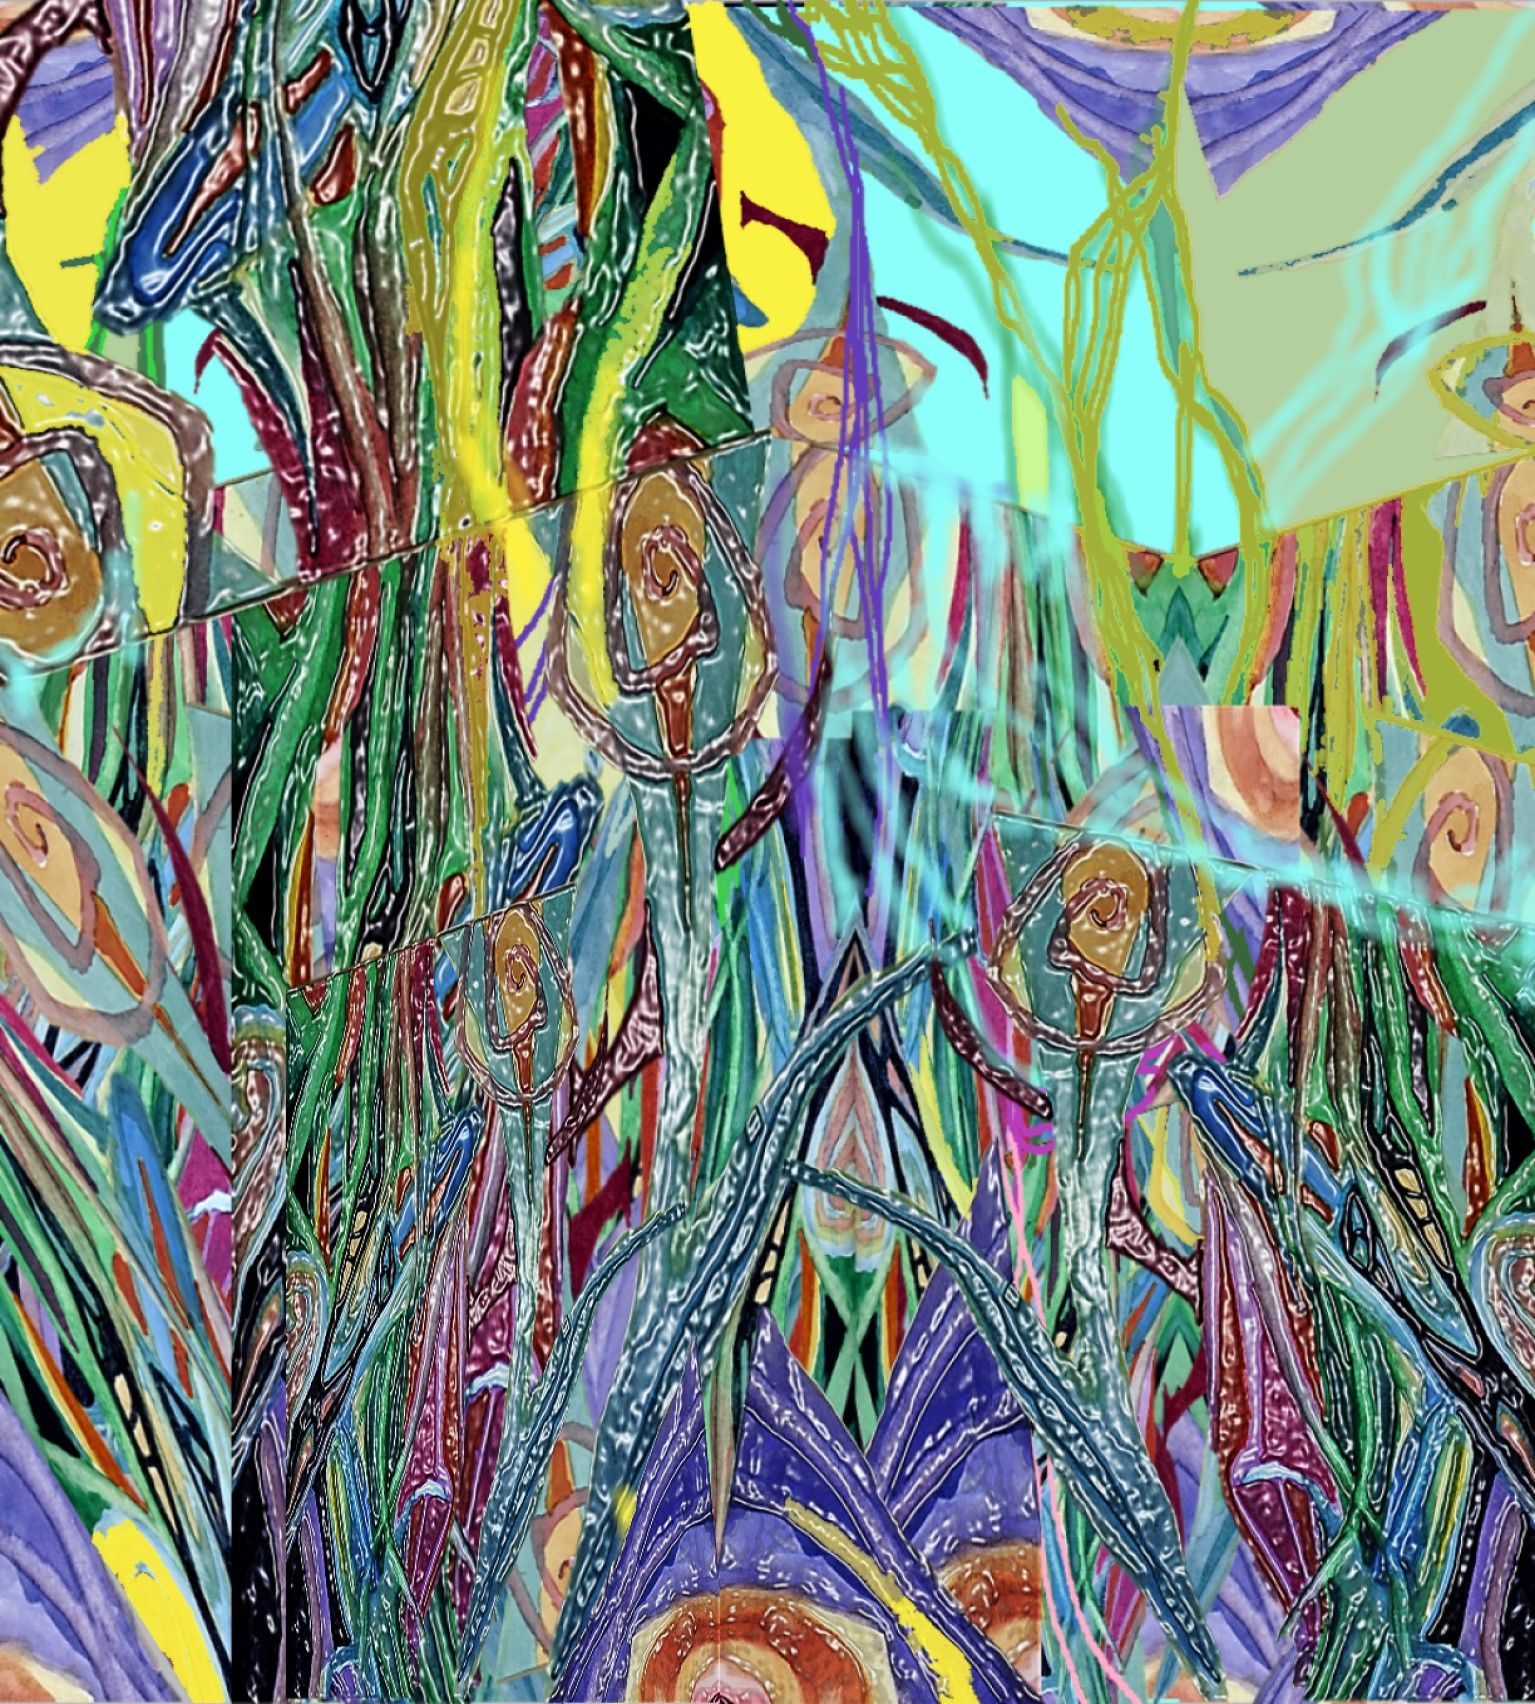 Abstract-Magical-Garden-Overgrown-with-Plastic-Flowers